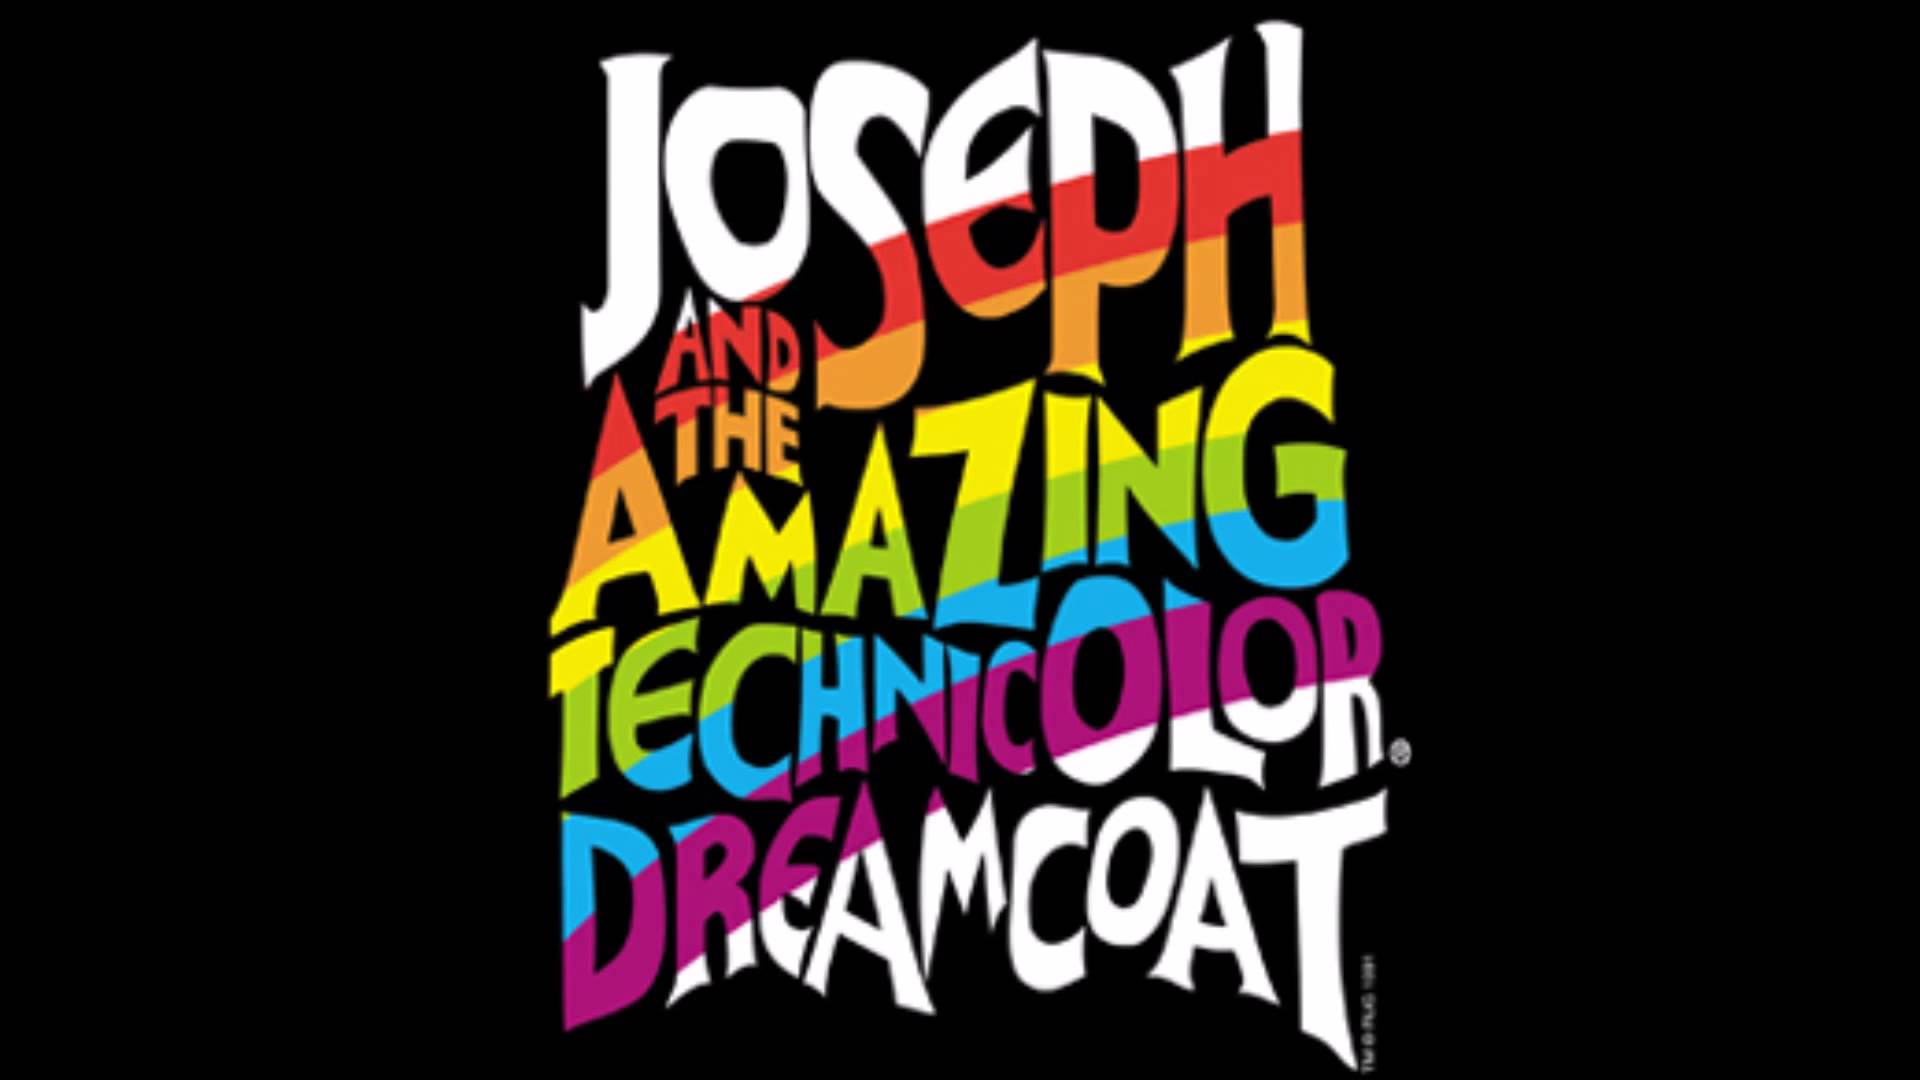 Joseph_Technicolor_Dreamcoat.jpg